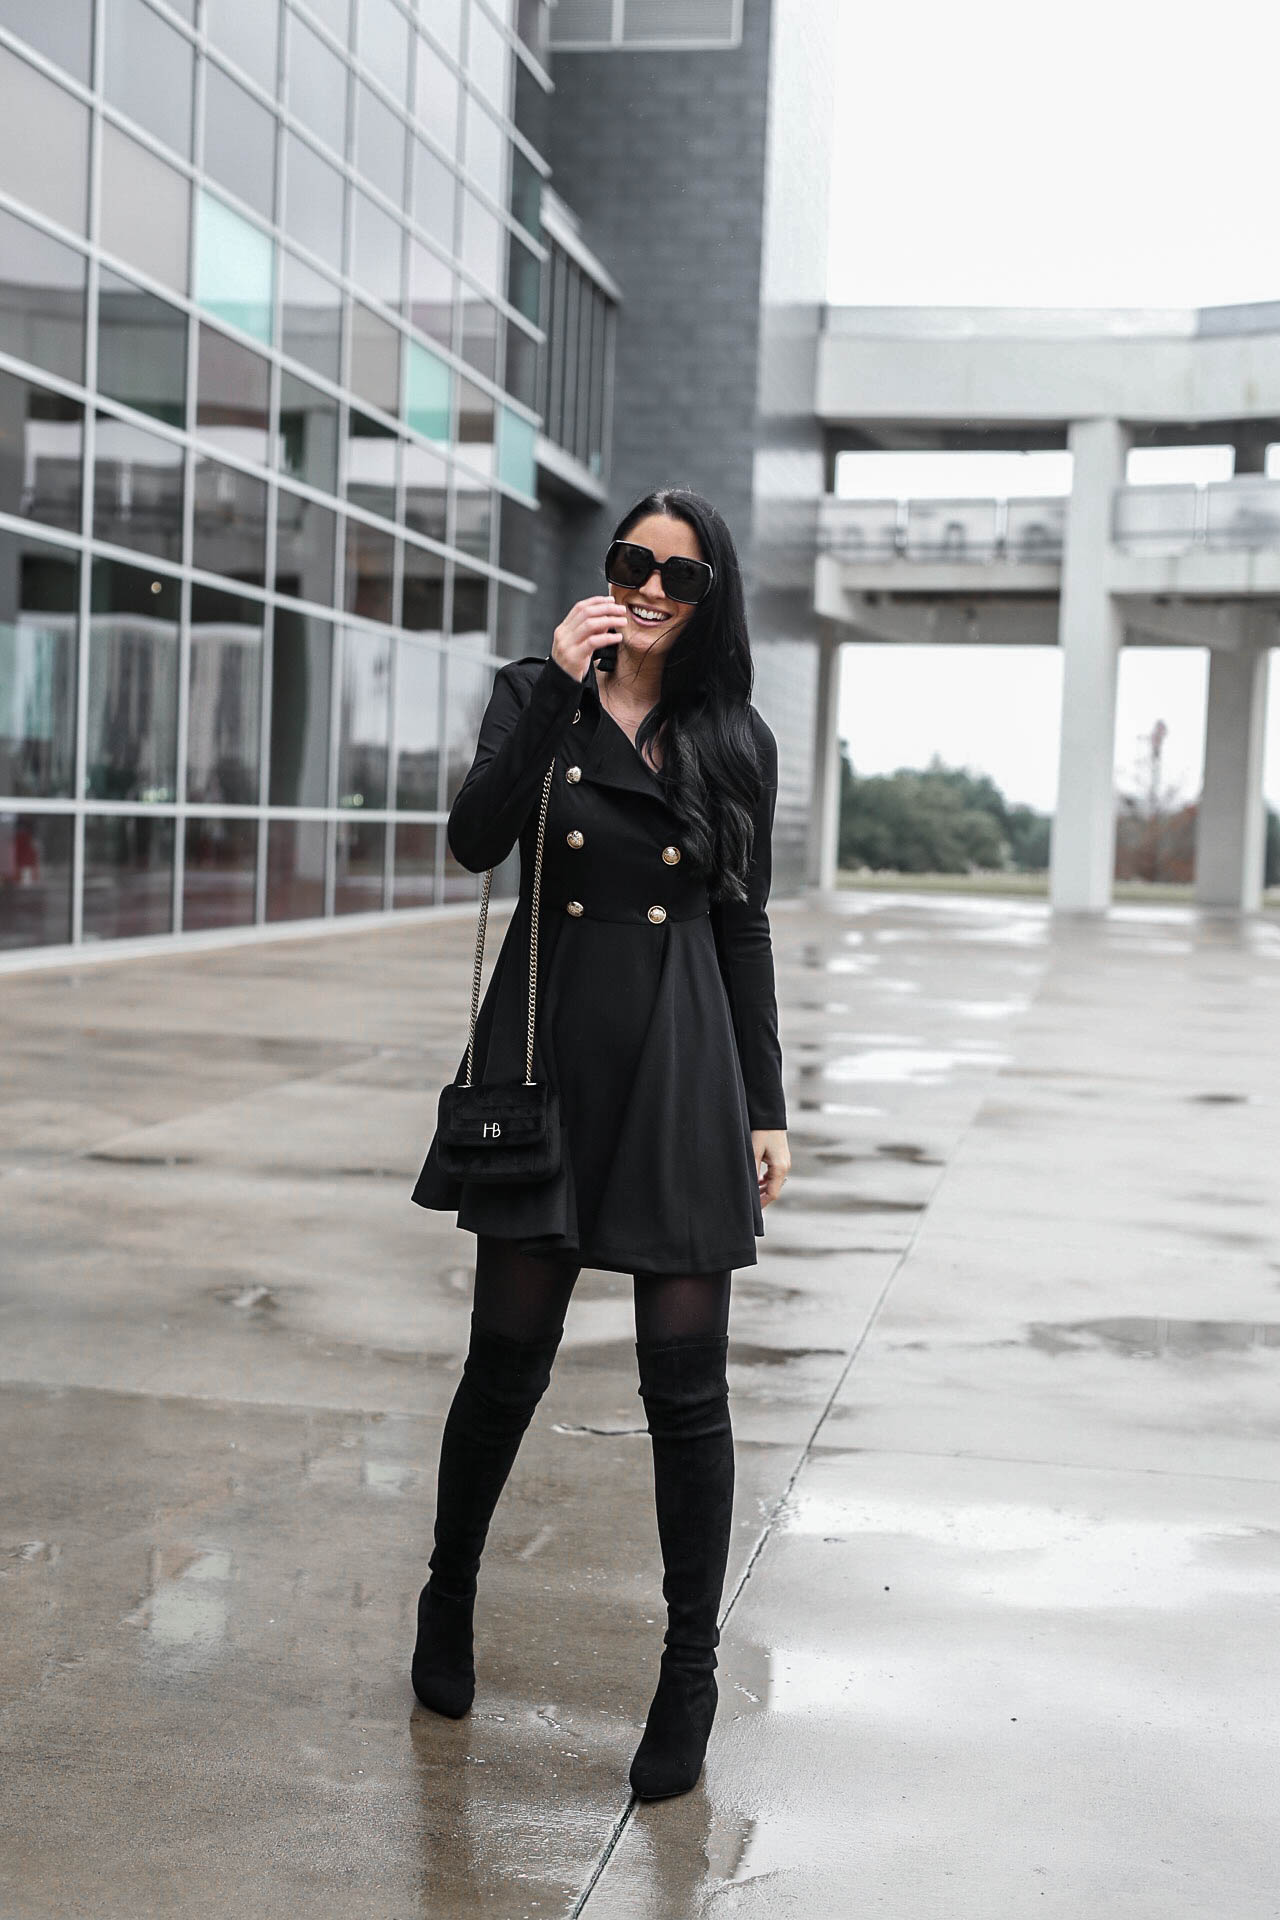 What Shoes To Wear With A Black Trench Coat - Tradingbasis